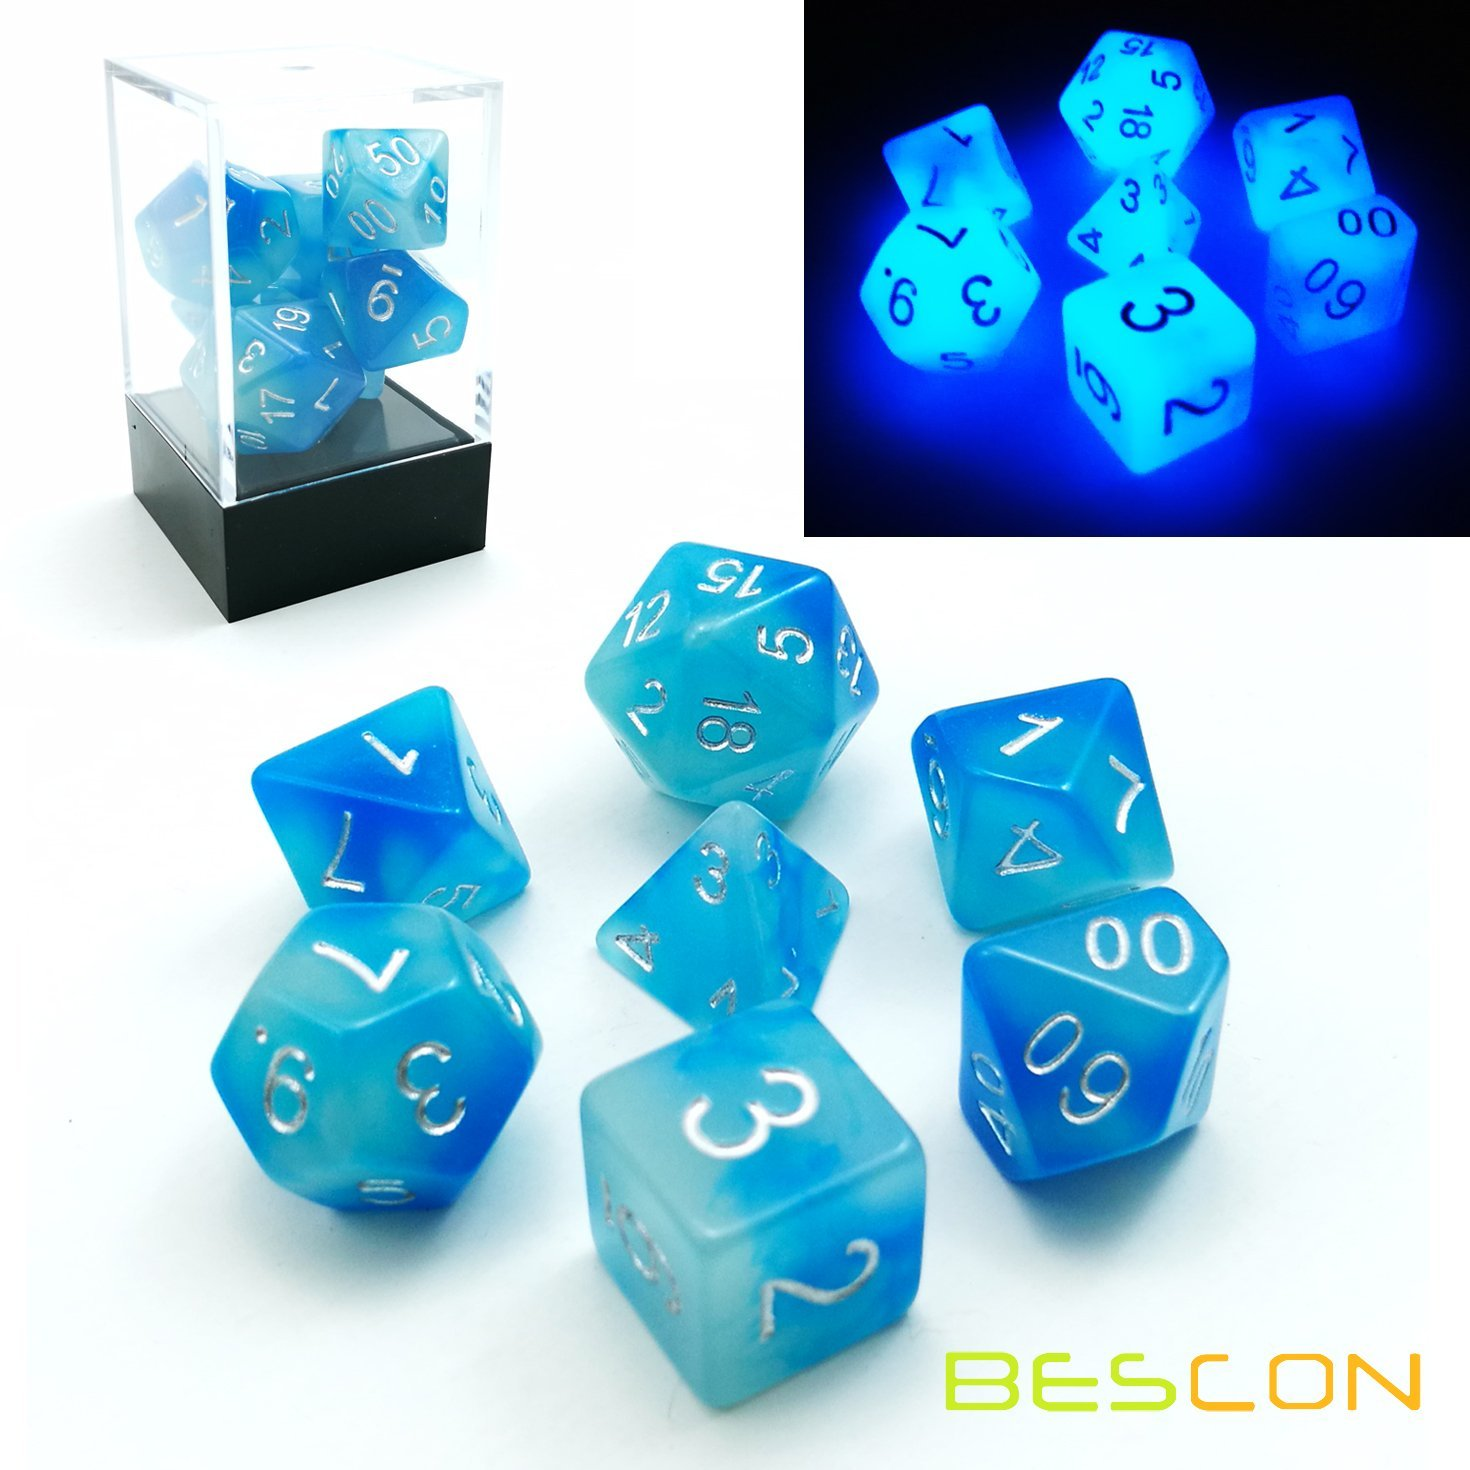 Bescon Gemini Glowing Polyhedral Dice 7pcs Set ICY ROCKS, Luminous RPG Dice Set d4 d6 d8 d10 d12 d20 d%, Brick Box Packaging by BESCON DICE (Image #1)